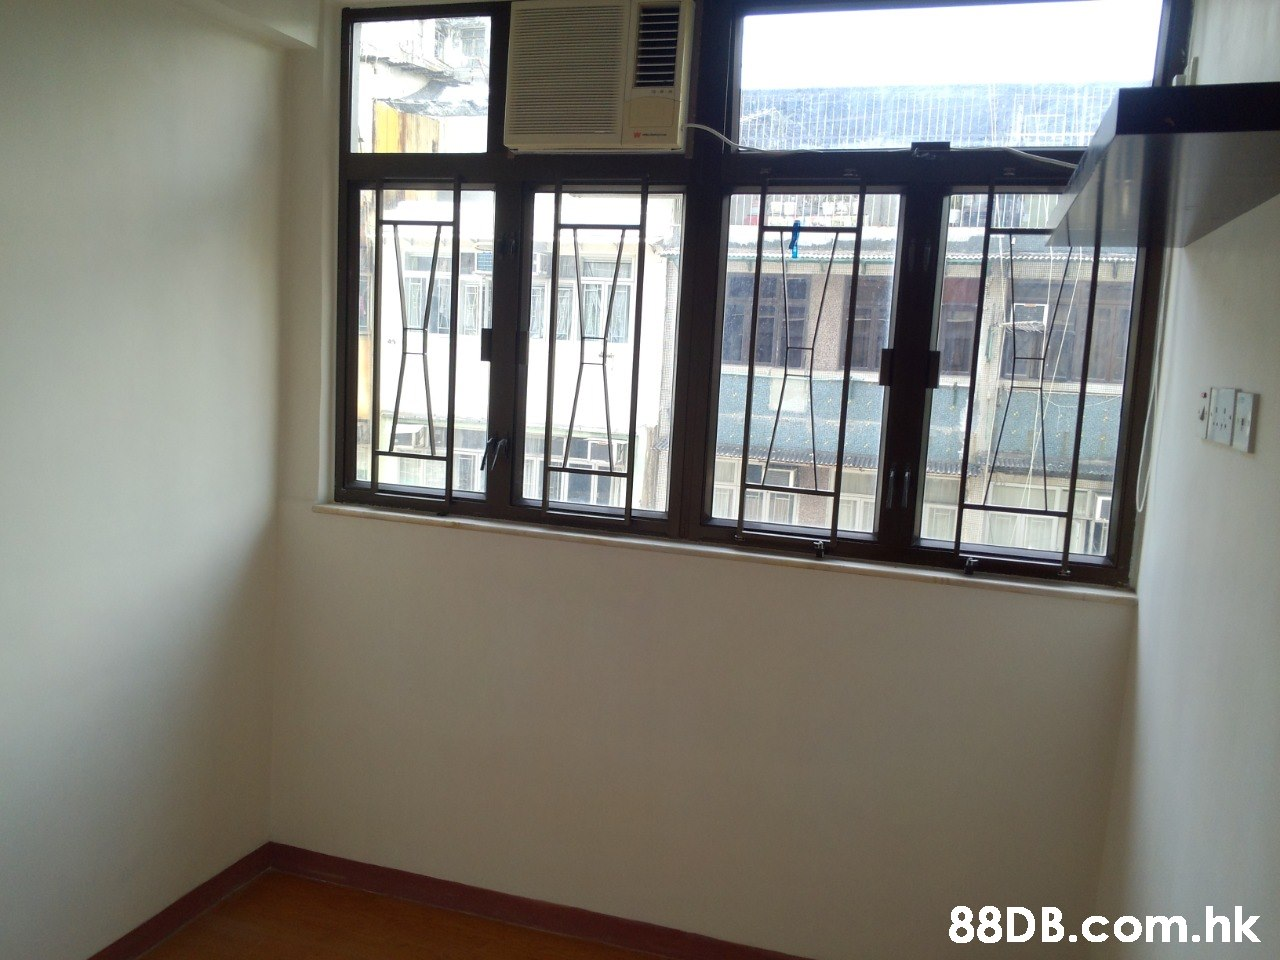 .hk  Property,Room,Daylighting,Building,Window